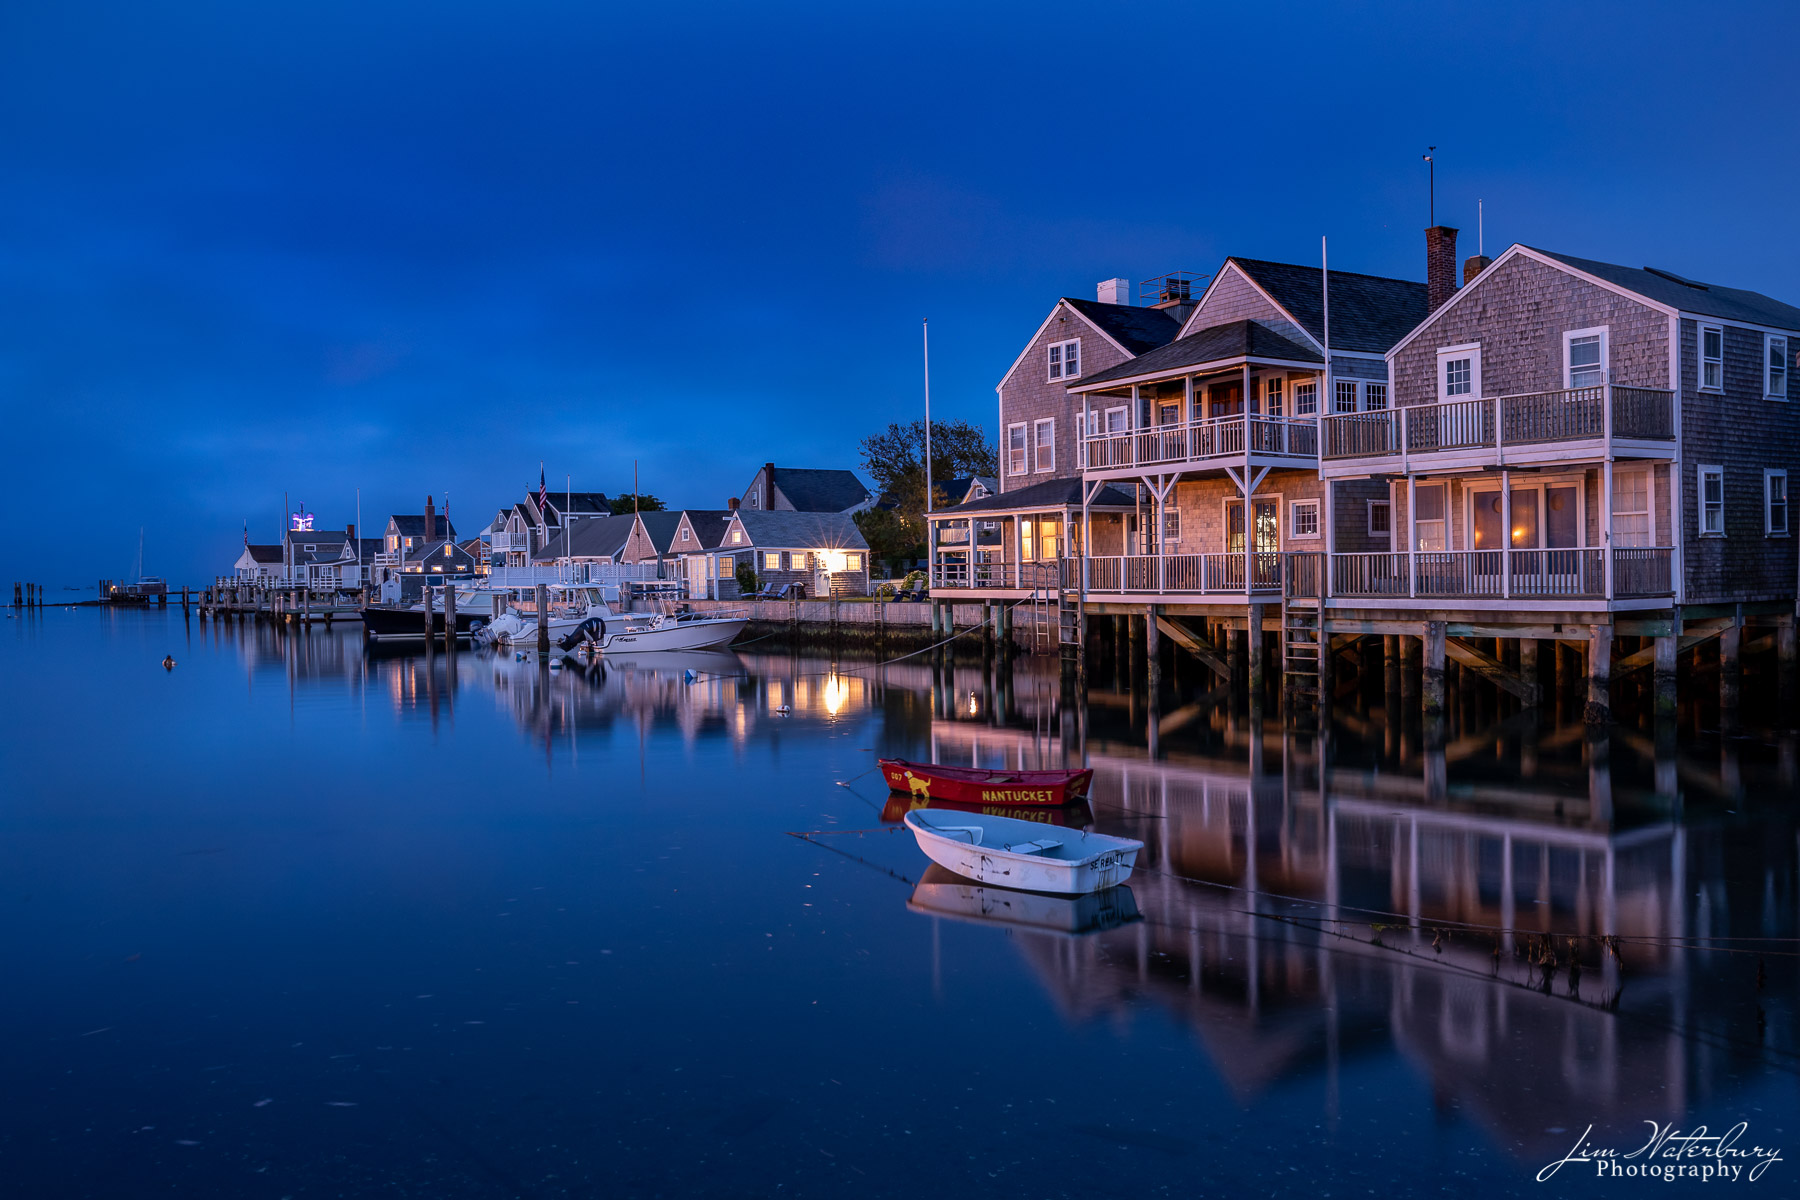 Night image of Easy Street Boat Basin, and reflections of the cottages of Old North Wharf on the calm waters below, with the...